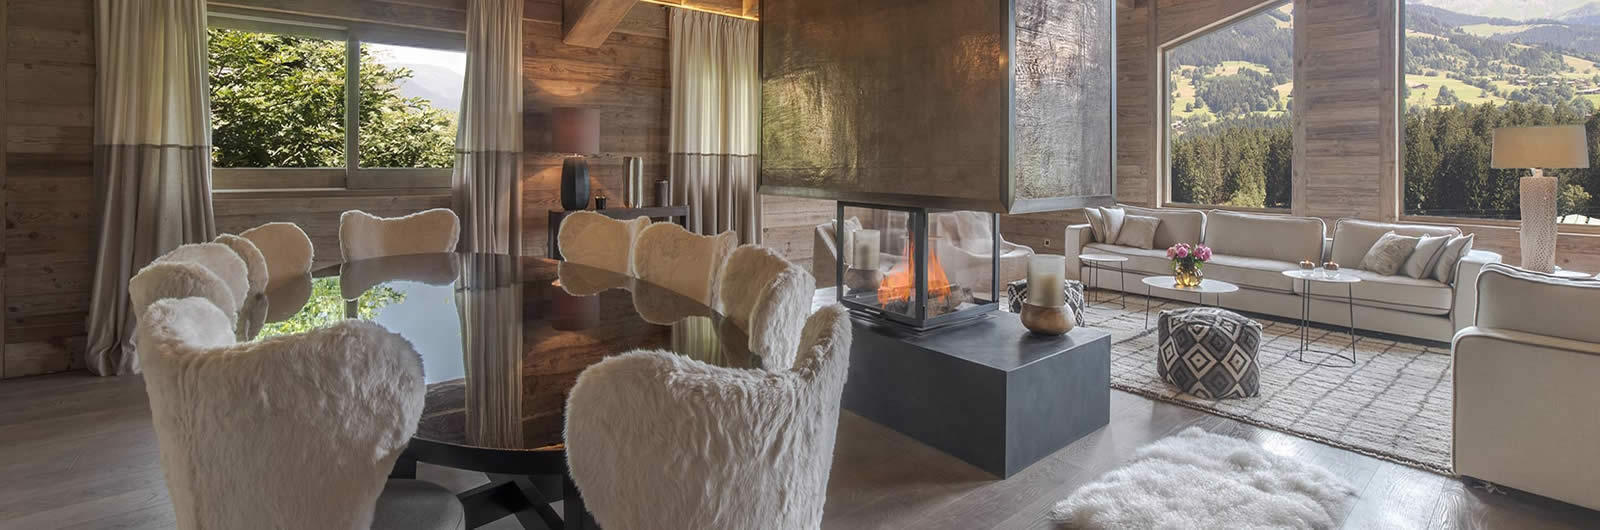 real-estate-market-buy-authentic-luxury-chalet-mountains